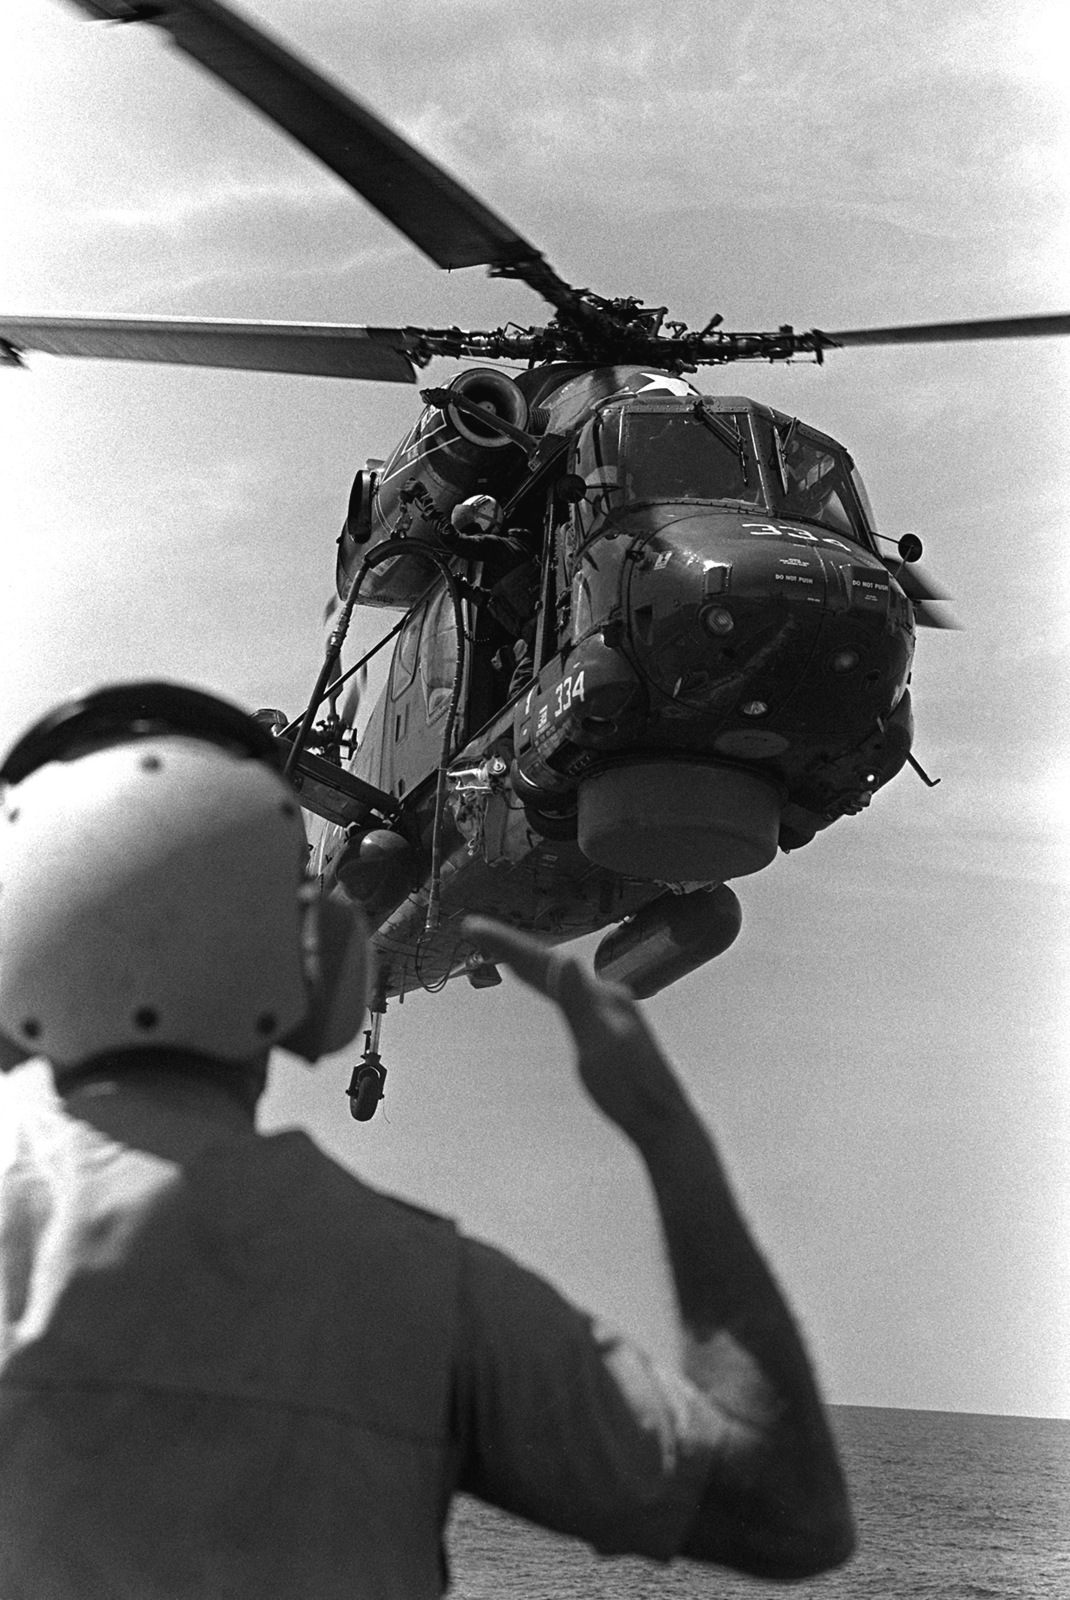 A Light Helicopter Anti-submarine Squadron 36 (HSL-36) SH-2F Seasprite light airborne multi-purpose system (LAMPS) helicopter is refueled in flight as a crewman guides it from the flight deck of the guided missile destroyer USS DEWEY (DDG-45), during exercise Unitas XX